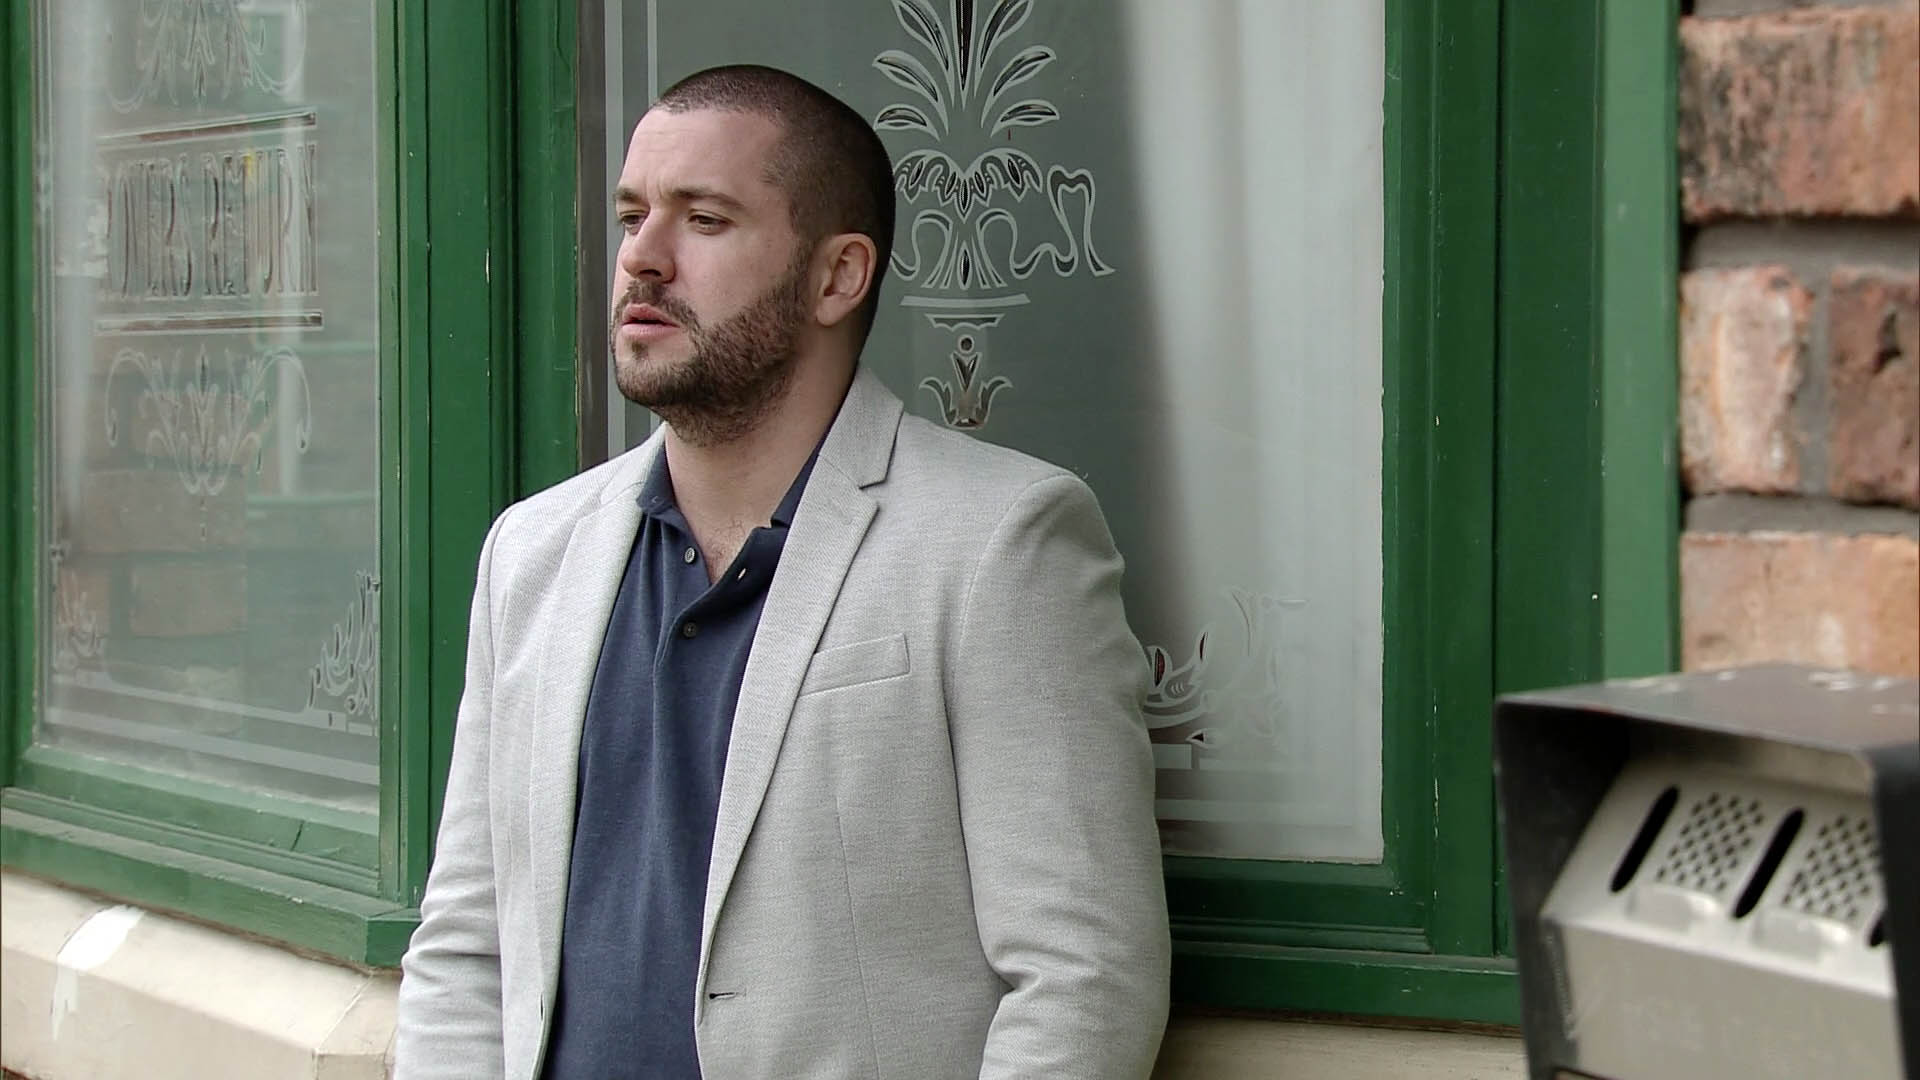 Coronation Street spoilers: What has Aidan Connor left in his will after his suicide death?